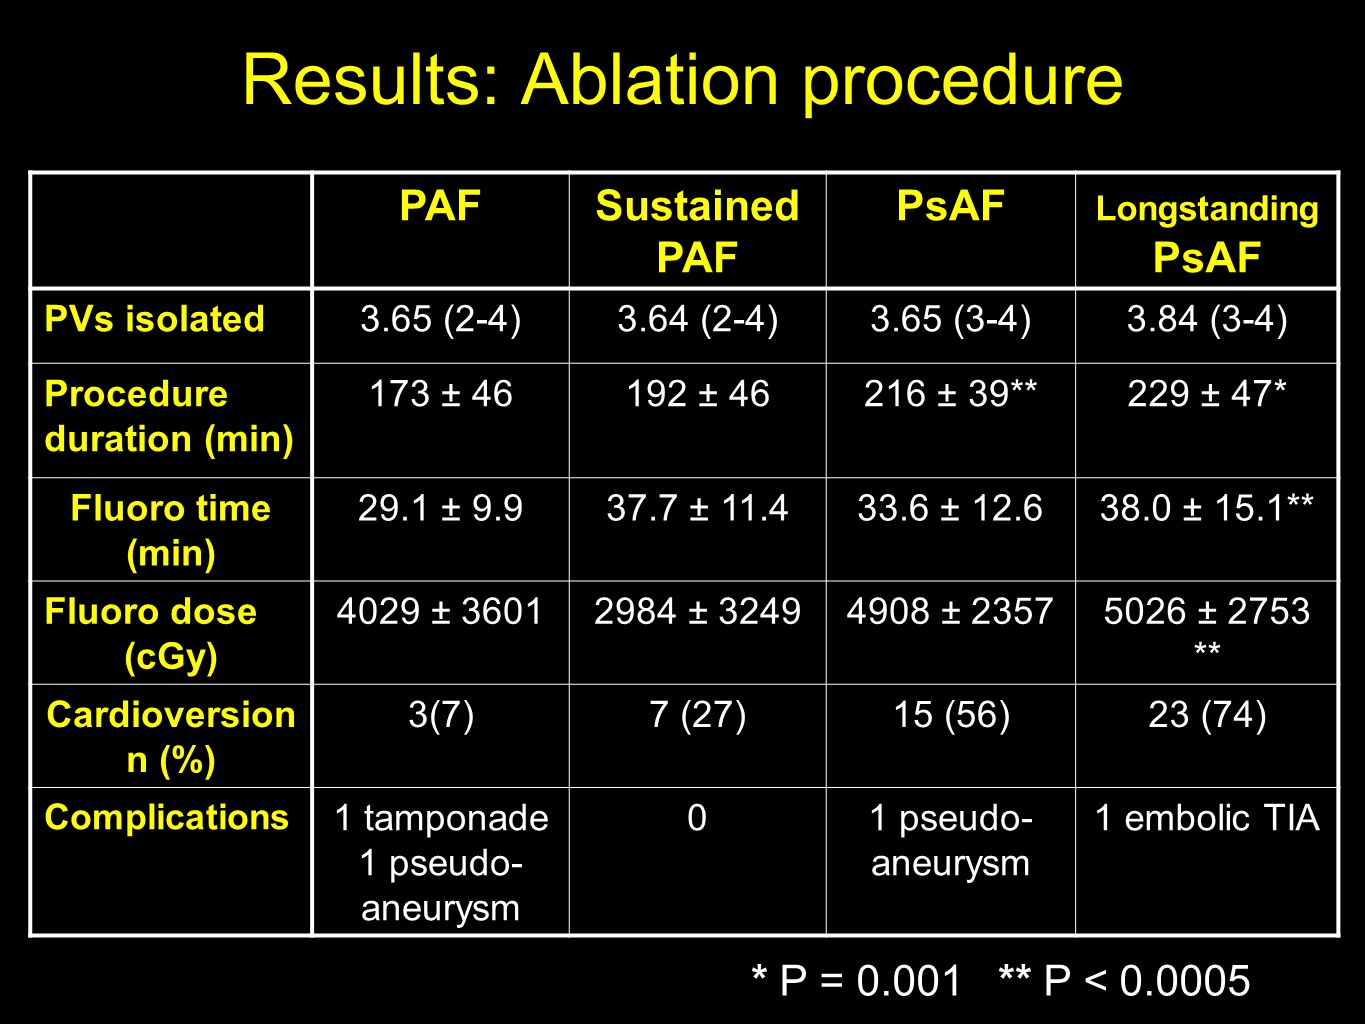 Results: Ablation procedure PAFSustained PAF PsAF Longstanding PsAF PVs isolated3.65 (2-4)3.64 (2-4)3.65 (3-4)3.84 (3-4) Procedure duration (min) 173 ± 46192 ± 46216 ± 39**229 ± 47* Fluoro time (min) 29.1 ± 9.937.7 ± 11.433.6 ± 12.638.0 ± 15.1** Fluoro dose (cGy) 4029 ± 36012984 ± 32494908 ± 23575026 ± 2753 ** Cardioversion n (%) 3(7)7 (27)15 (56)23 (74) Complications 1 tamponade 1 pseudo- aneurysm 0 1 embolic TIA * P = 0.001 ** P < 0.0005